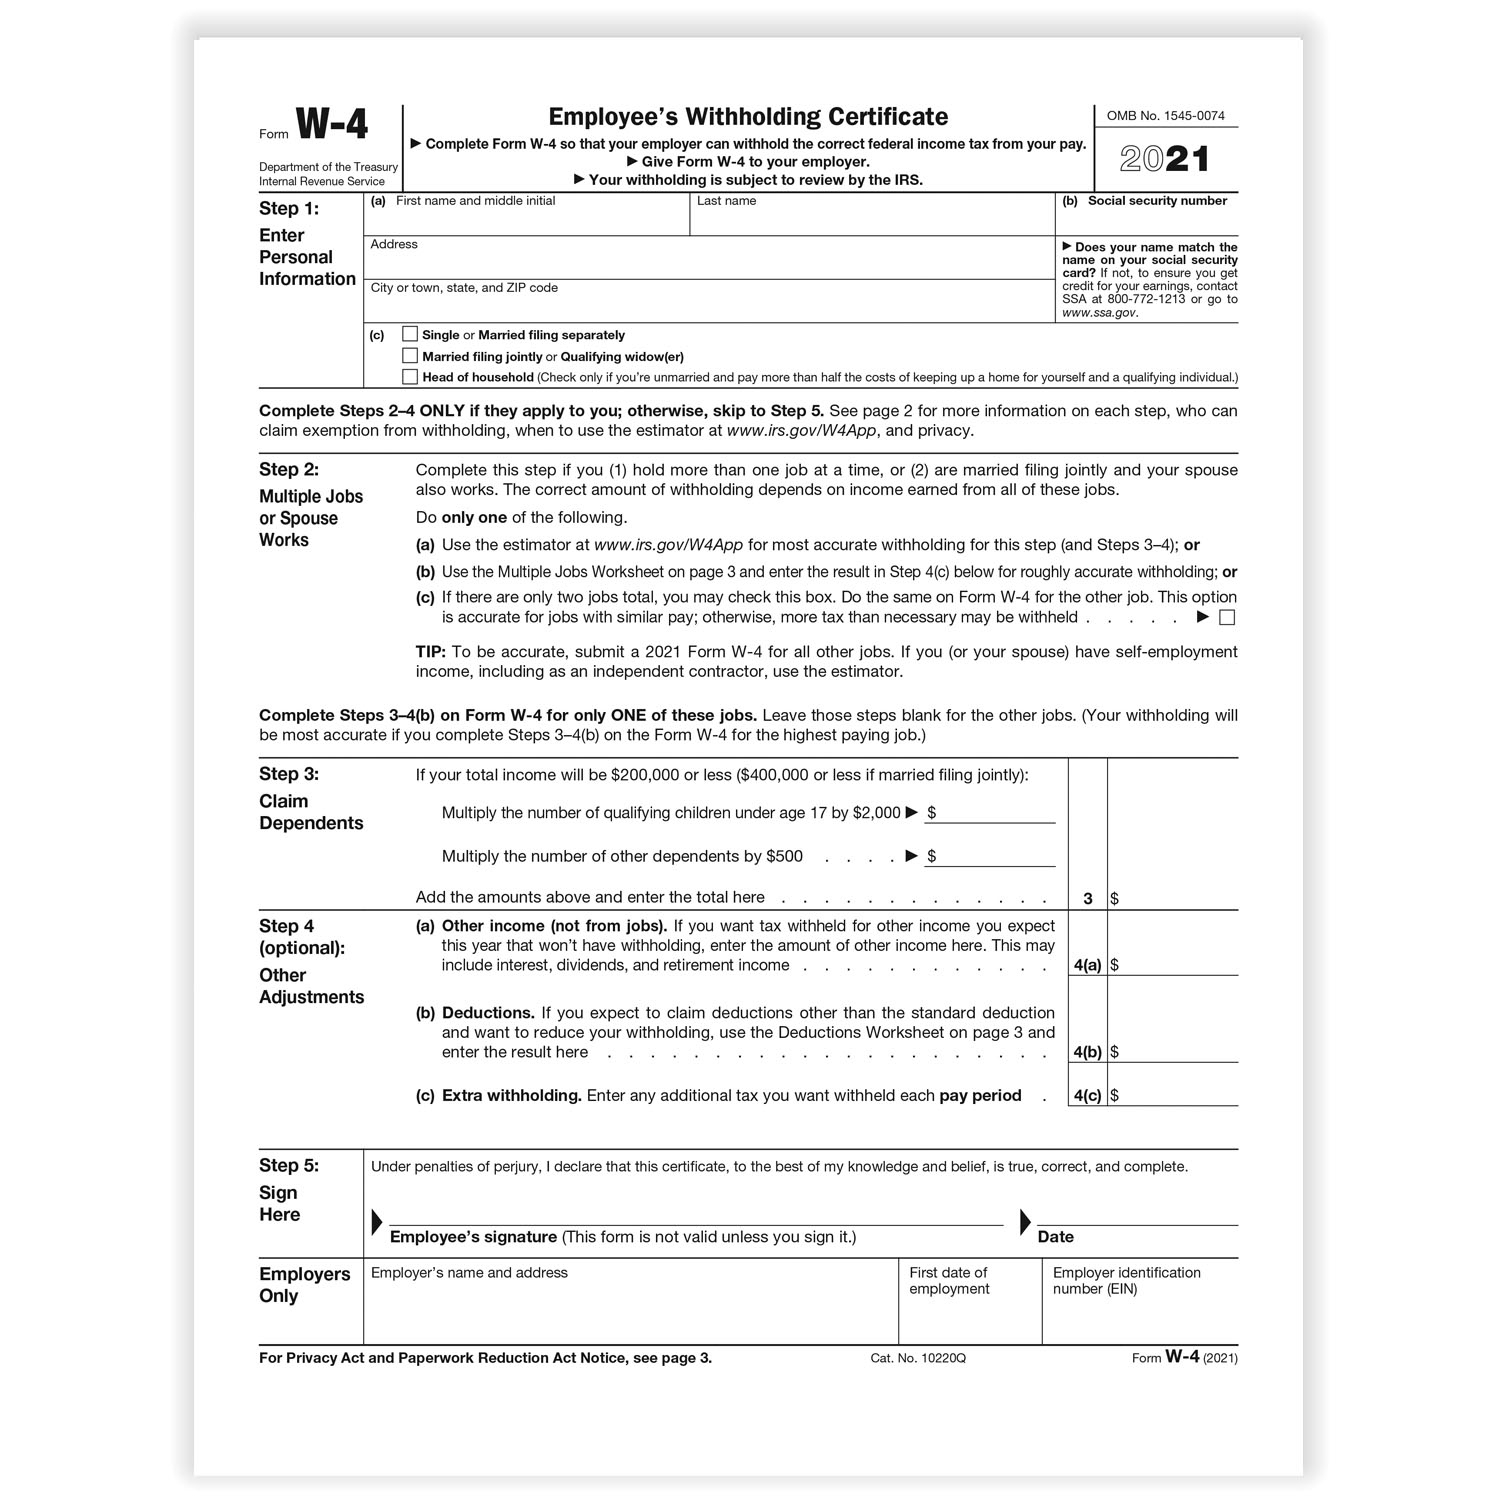 W-4 Forms intended for Form W-4 2021